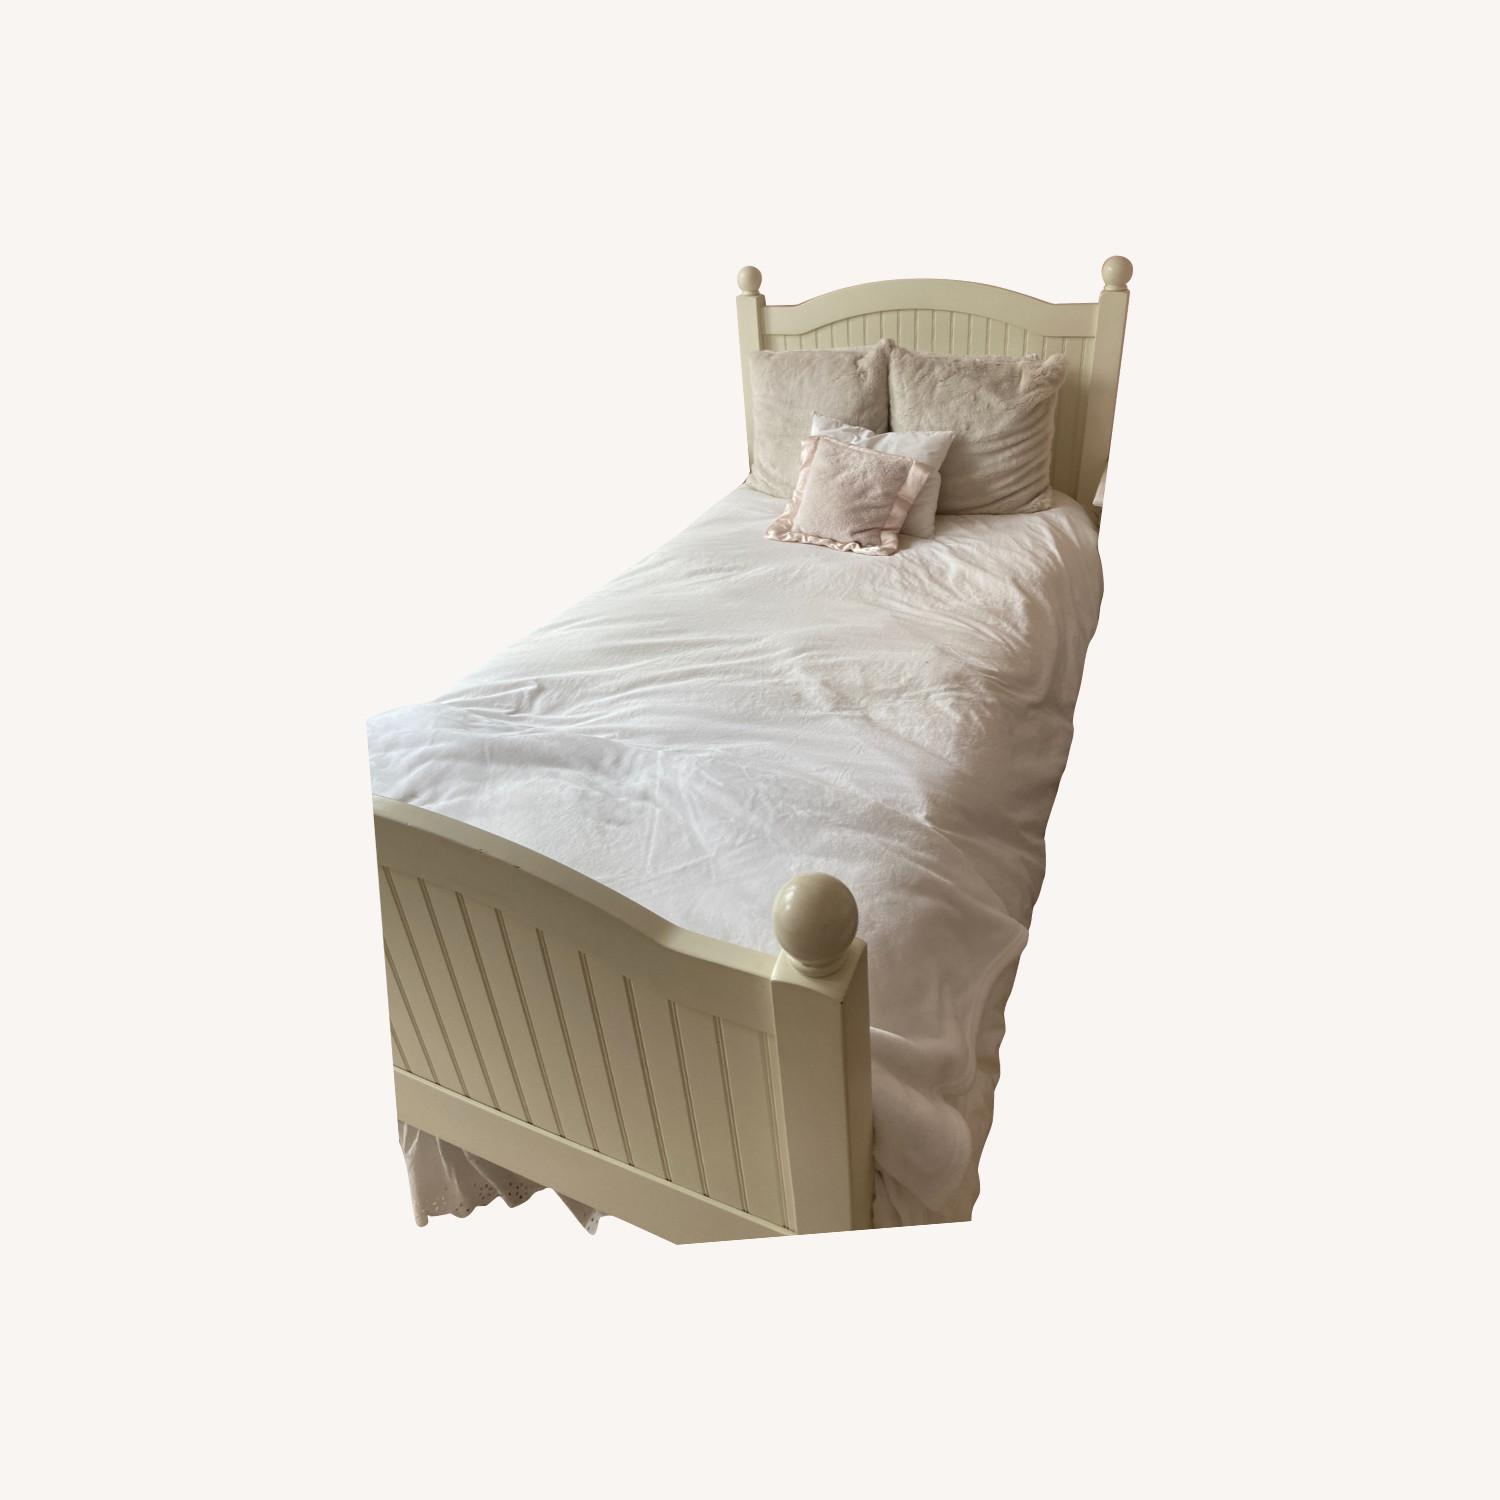 Pottery Barn Kids Catalina Bed, Twin, Simply White - image-0